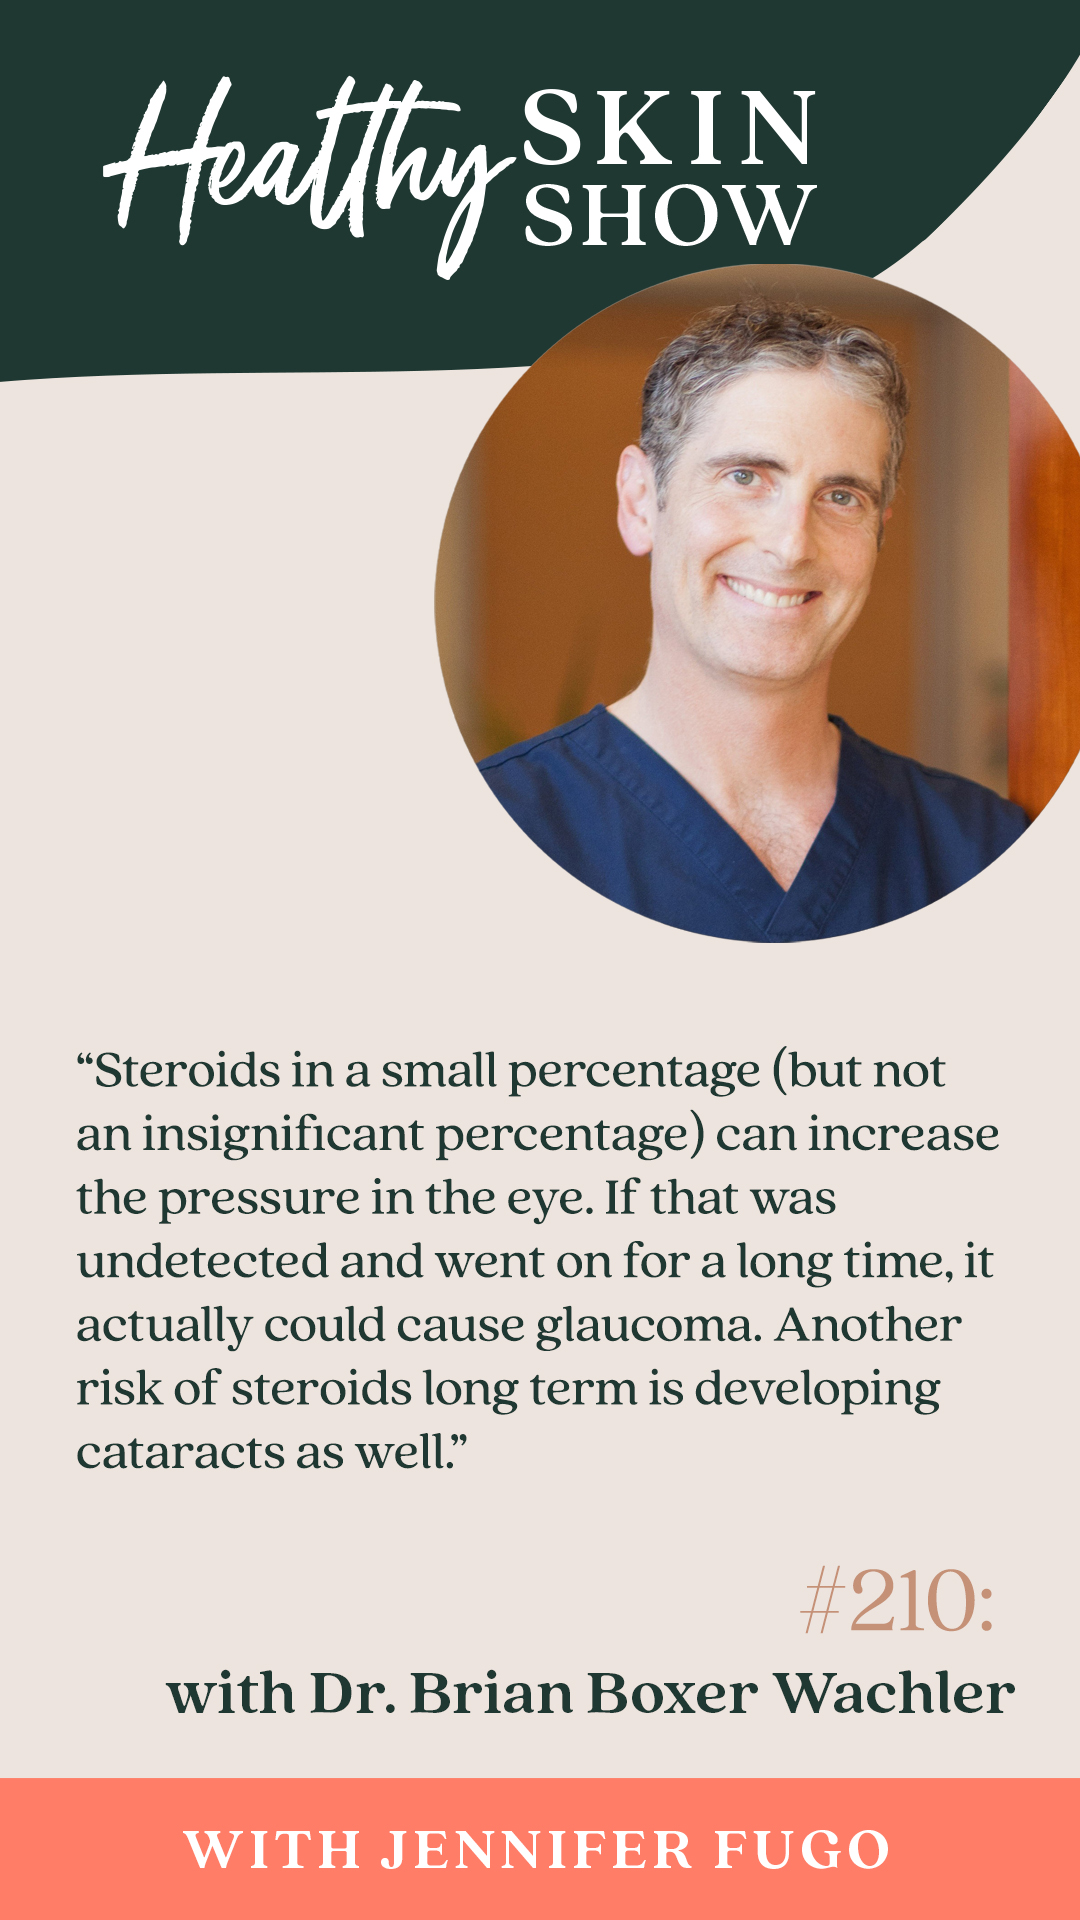 """""""Steroids in a small percentage (but not an insignificant percentage) can increase the pressure in the eye. If that was undetected and went on for a long time, it actually could cause glaucoma. Another risk of steroids long term is developing cataracts as well."""""""